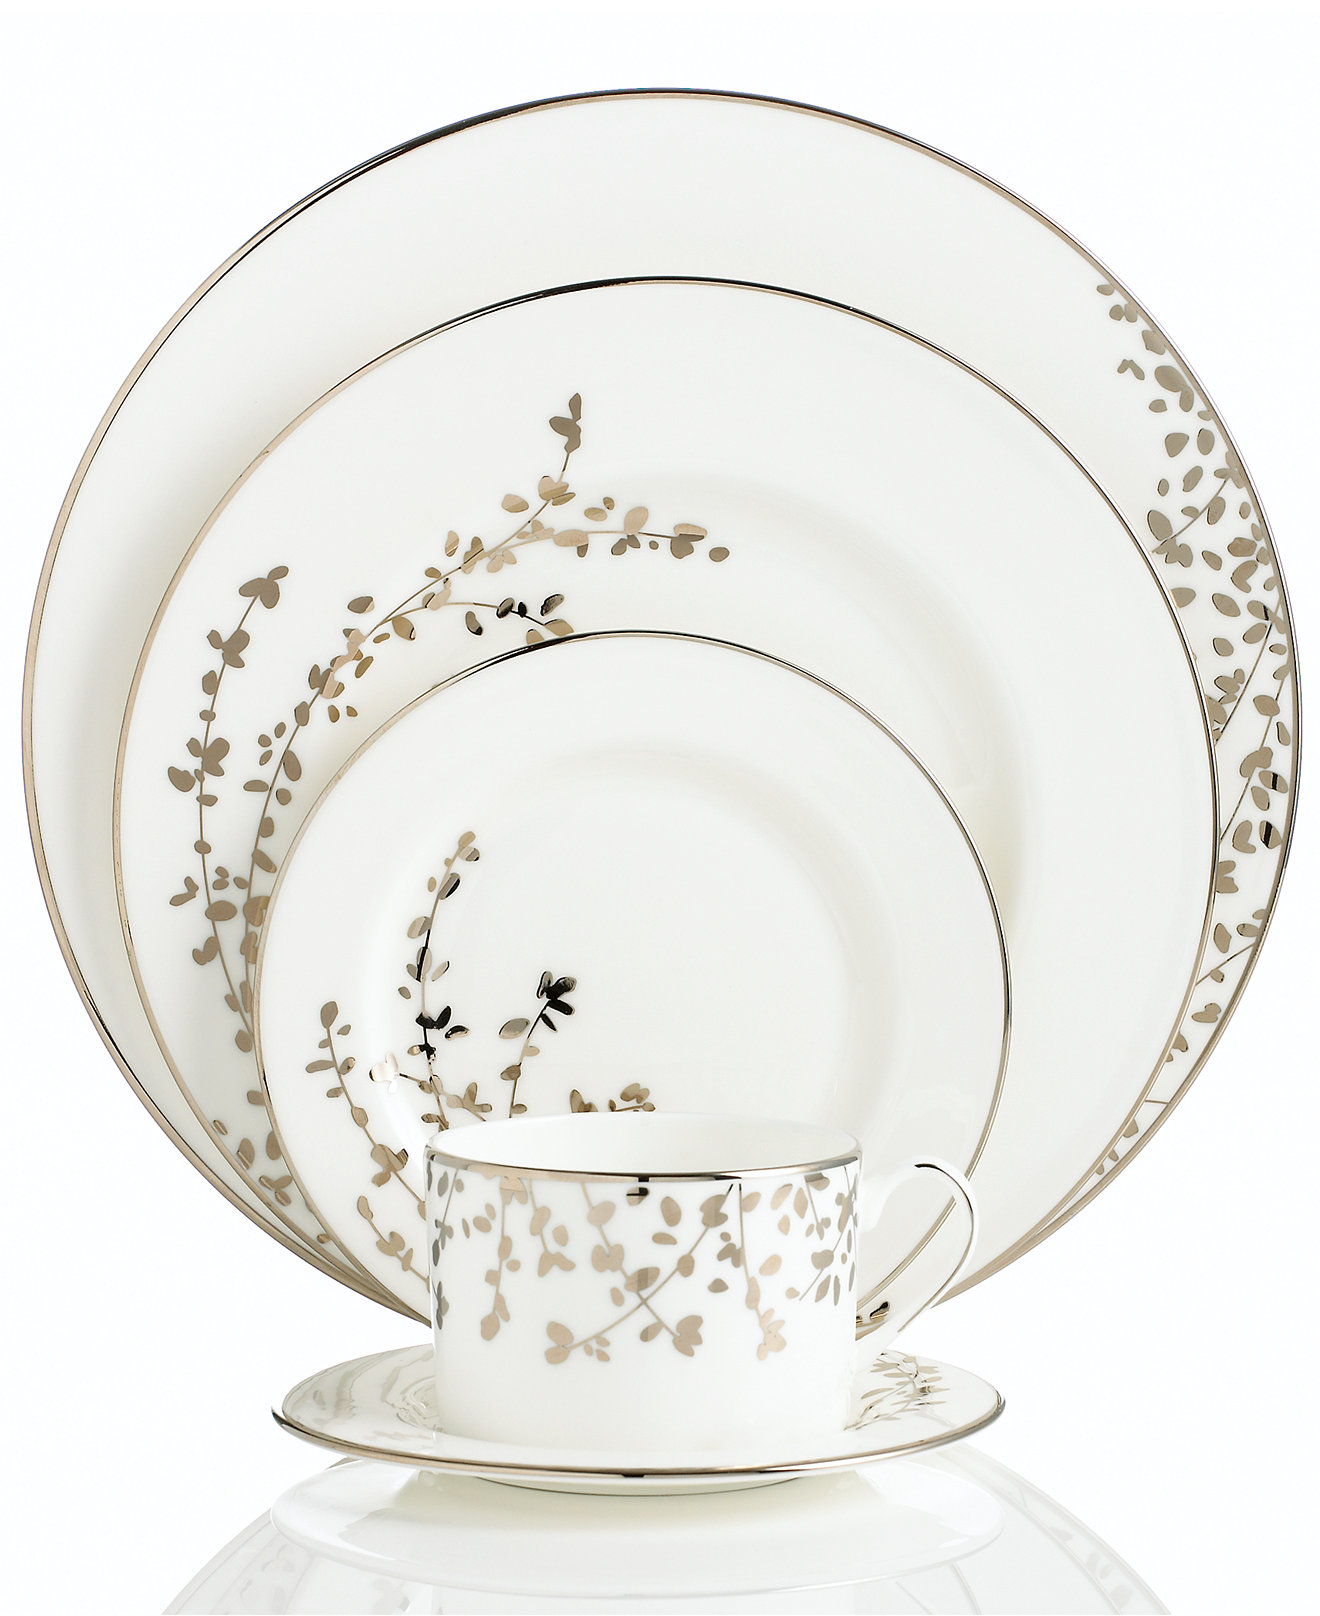 Incredible Christmas Dinnerware For Christmas Decorating Ideas With Christmas Dinnerware Sets Clearance  sc 1 st  Straydogrecordingco.com & Kitchen u0026 Dining Sets: Incredible Christmas Dinnerware For Christmas ...